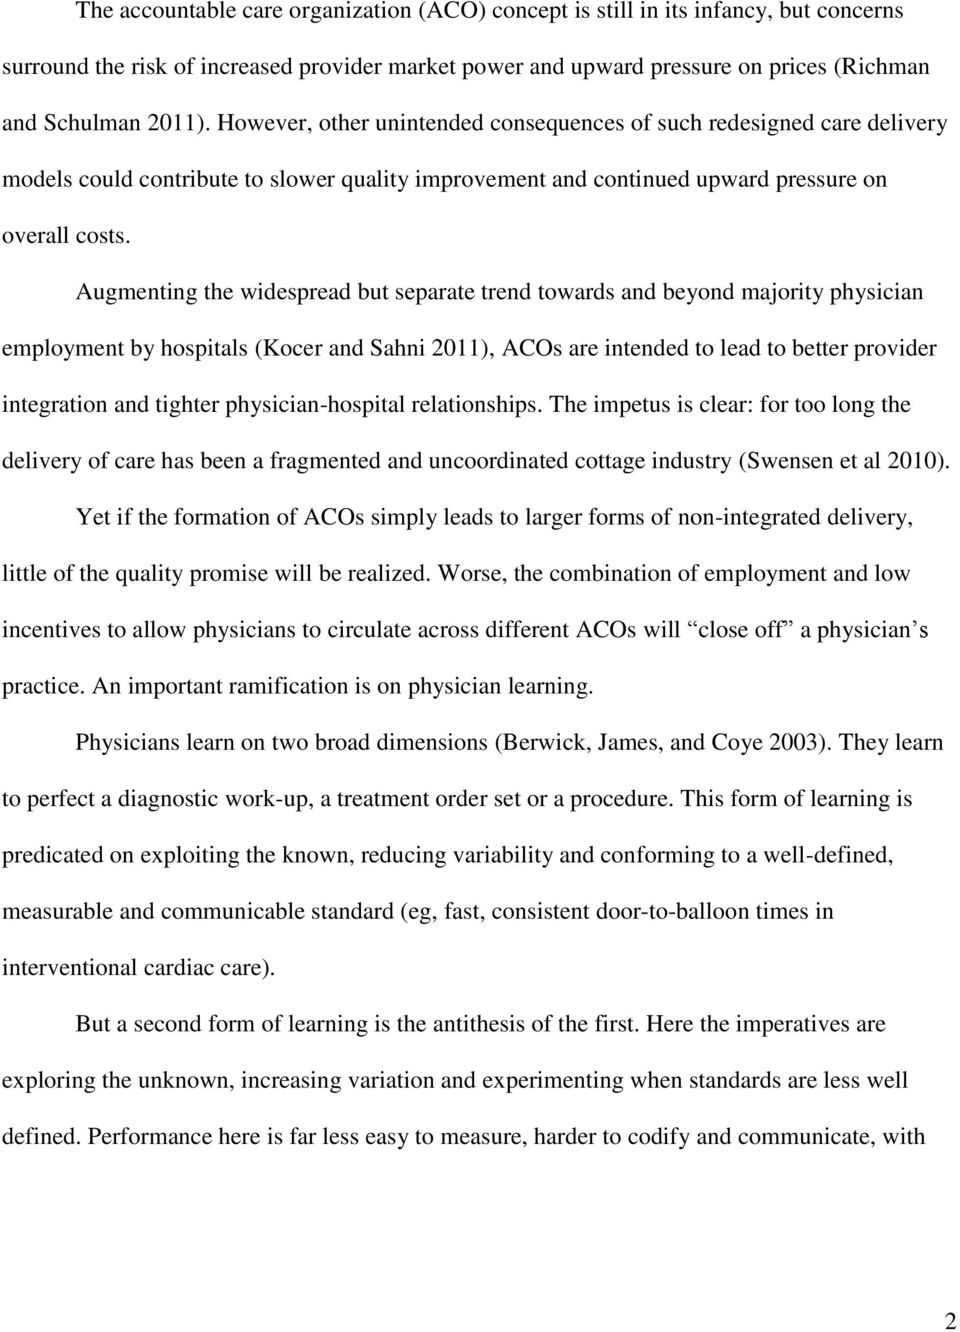 Augmenting the widespread but separate trend towards and beyond majority physician employment by hospitals (Kocer and Sahni 2011), ACOs are intended to lead to better provider integration and tighter